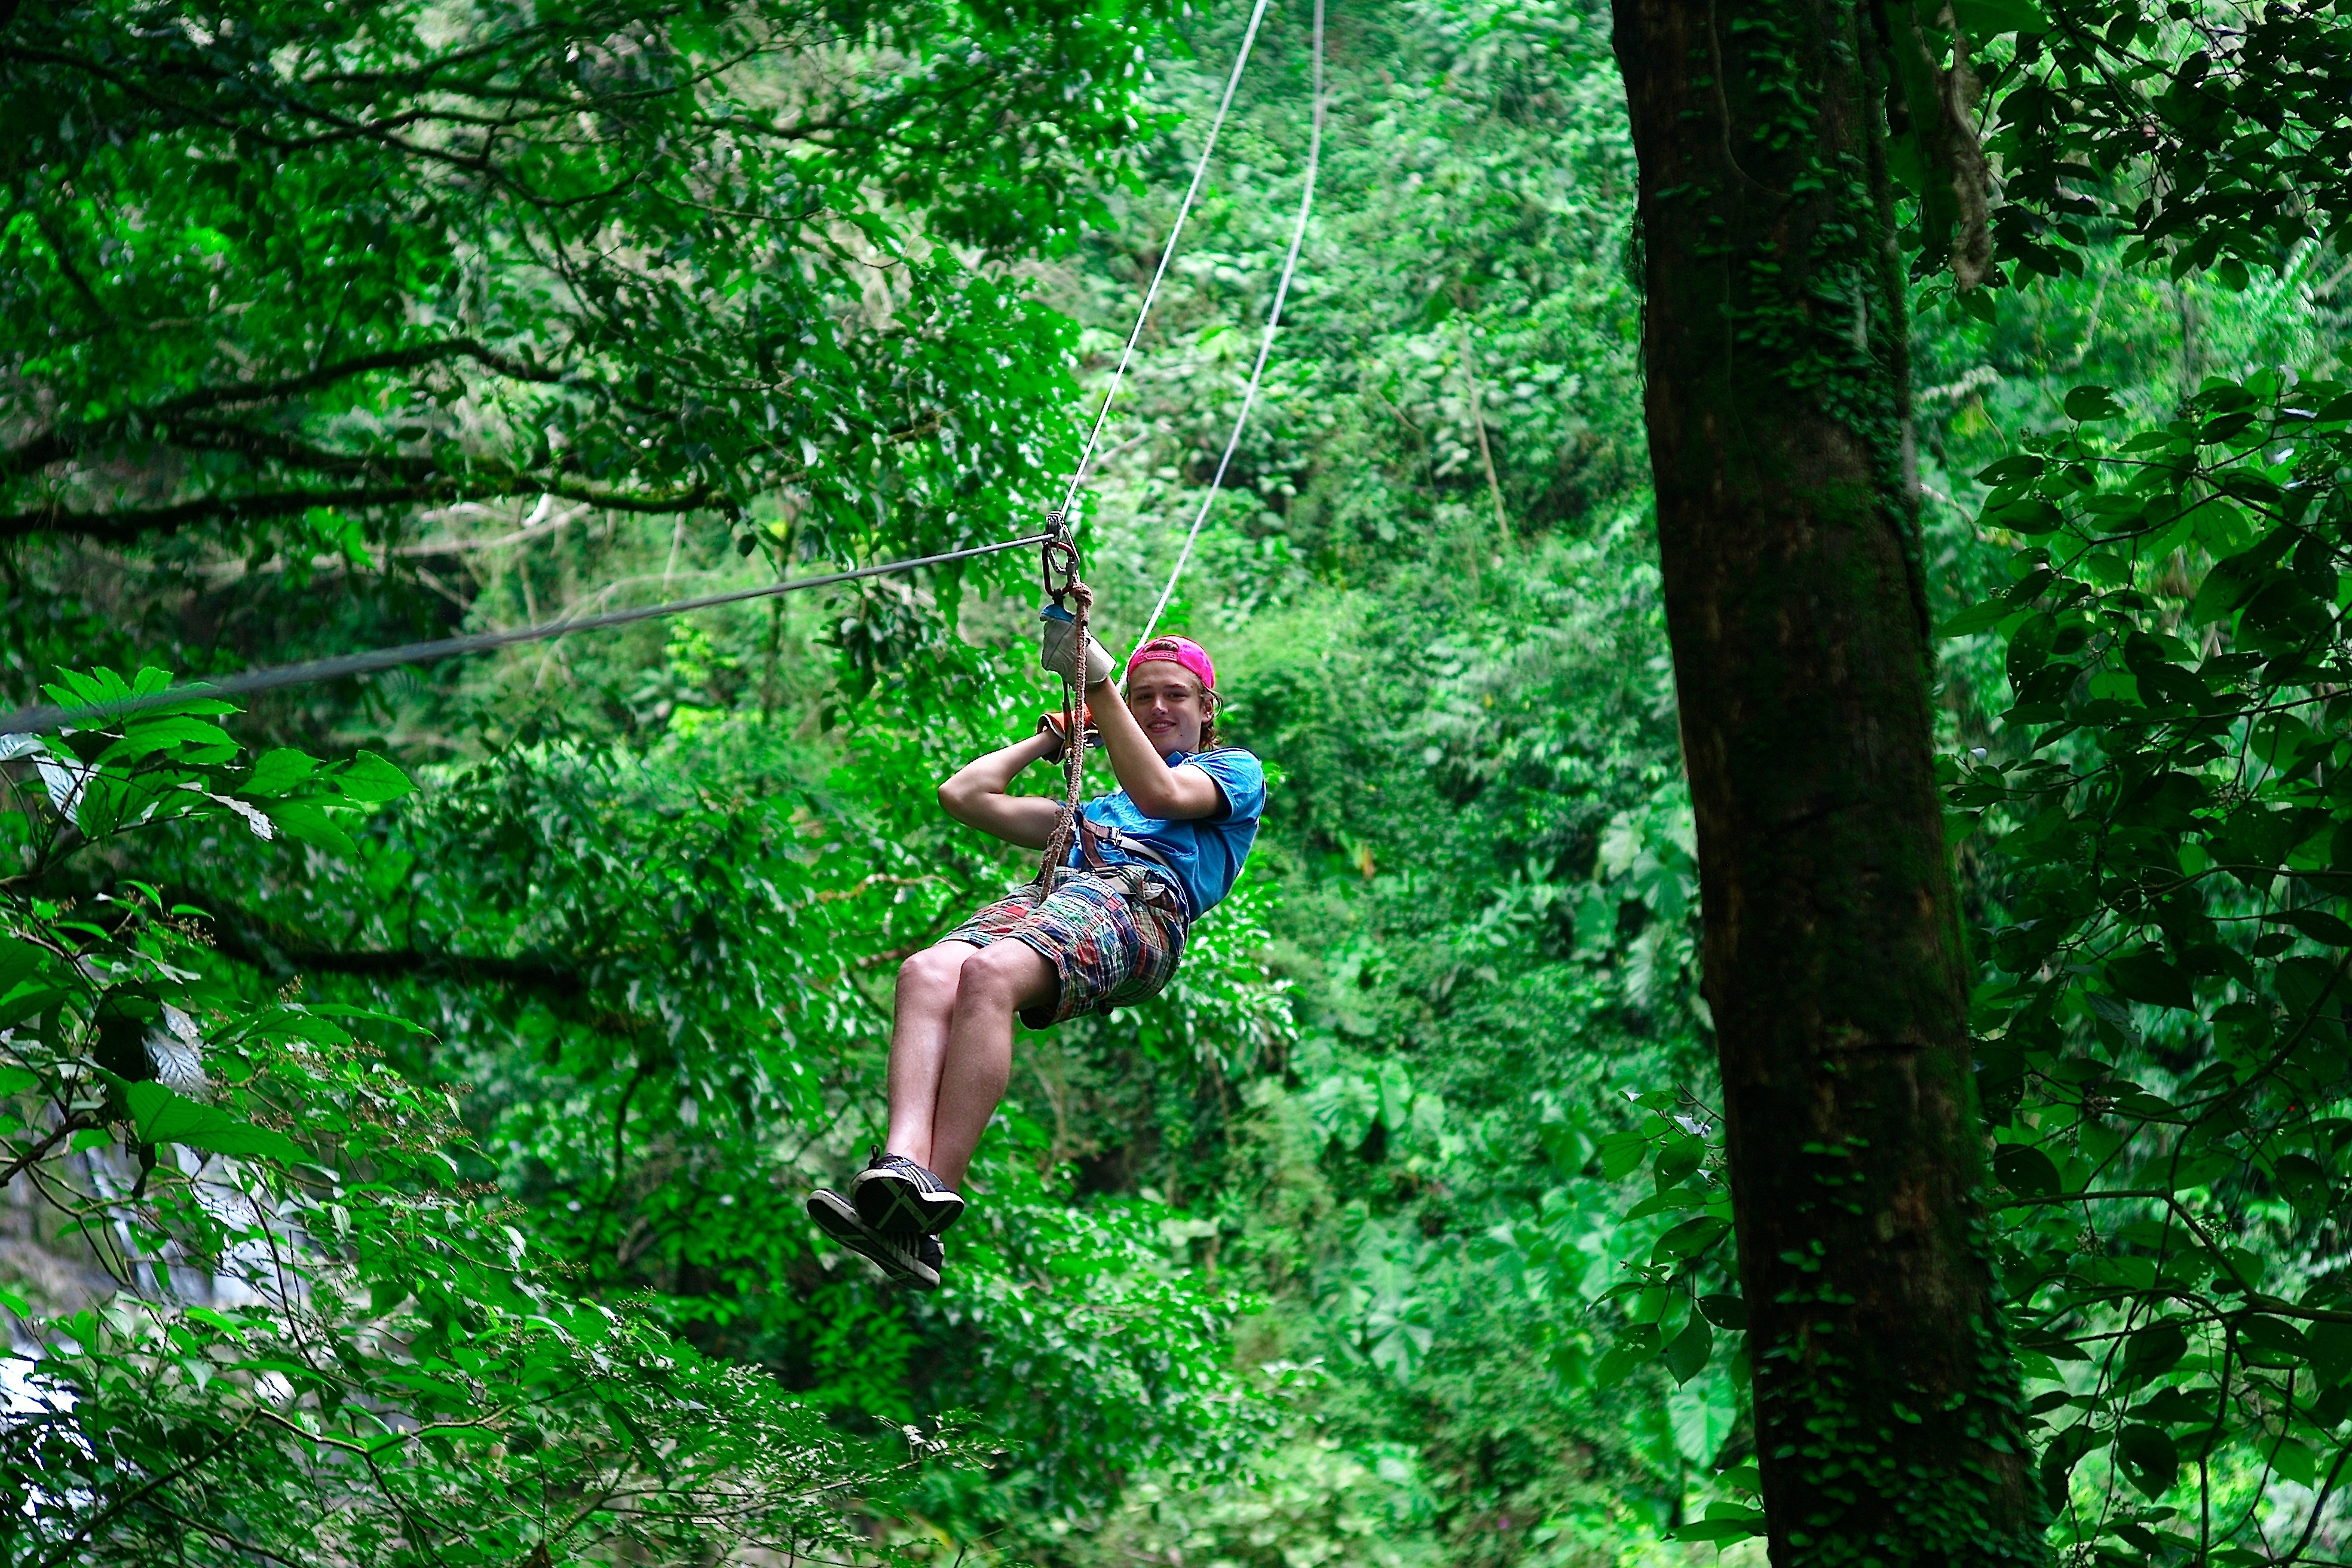 Zip line through the jungle - Things to do in Chiang Mai